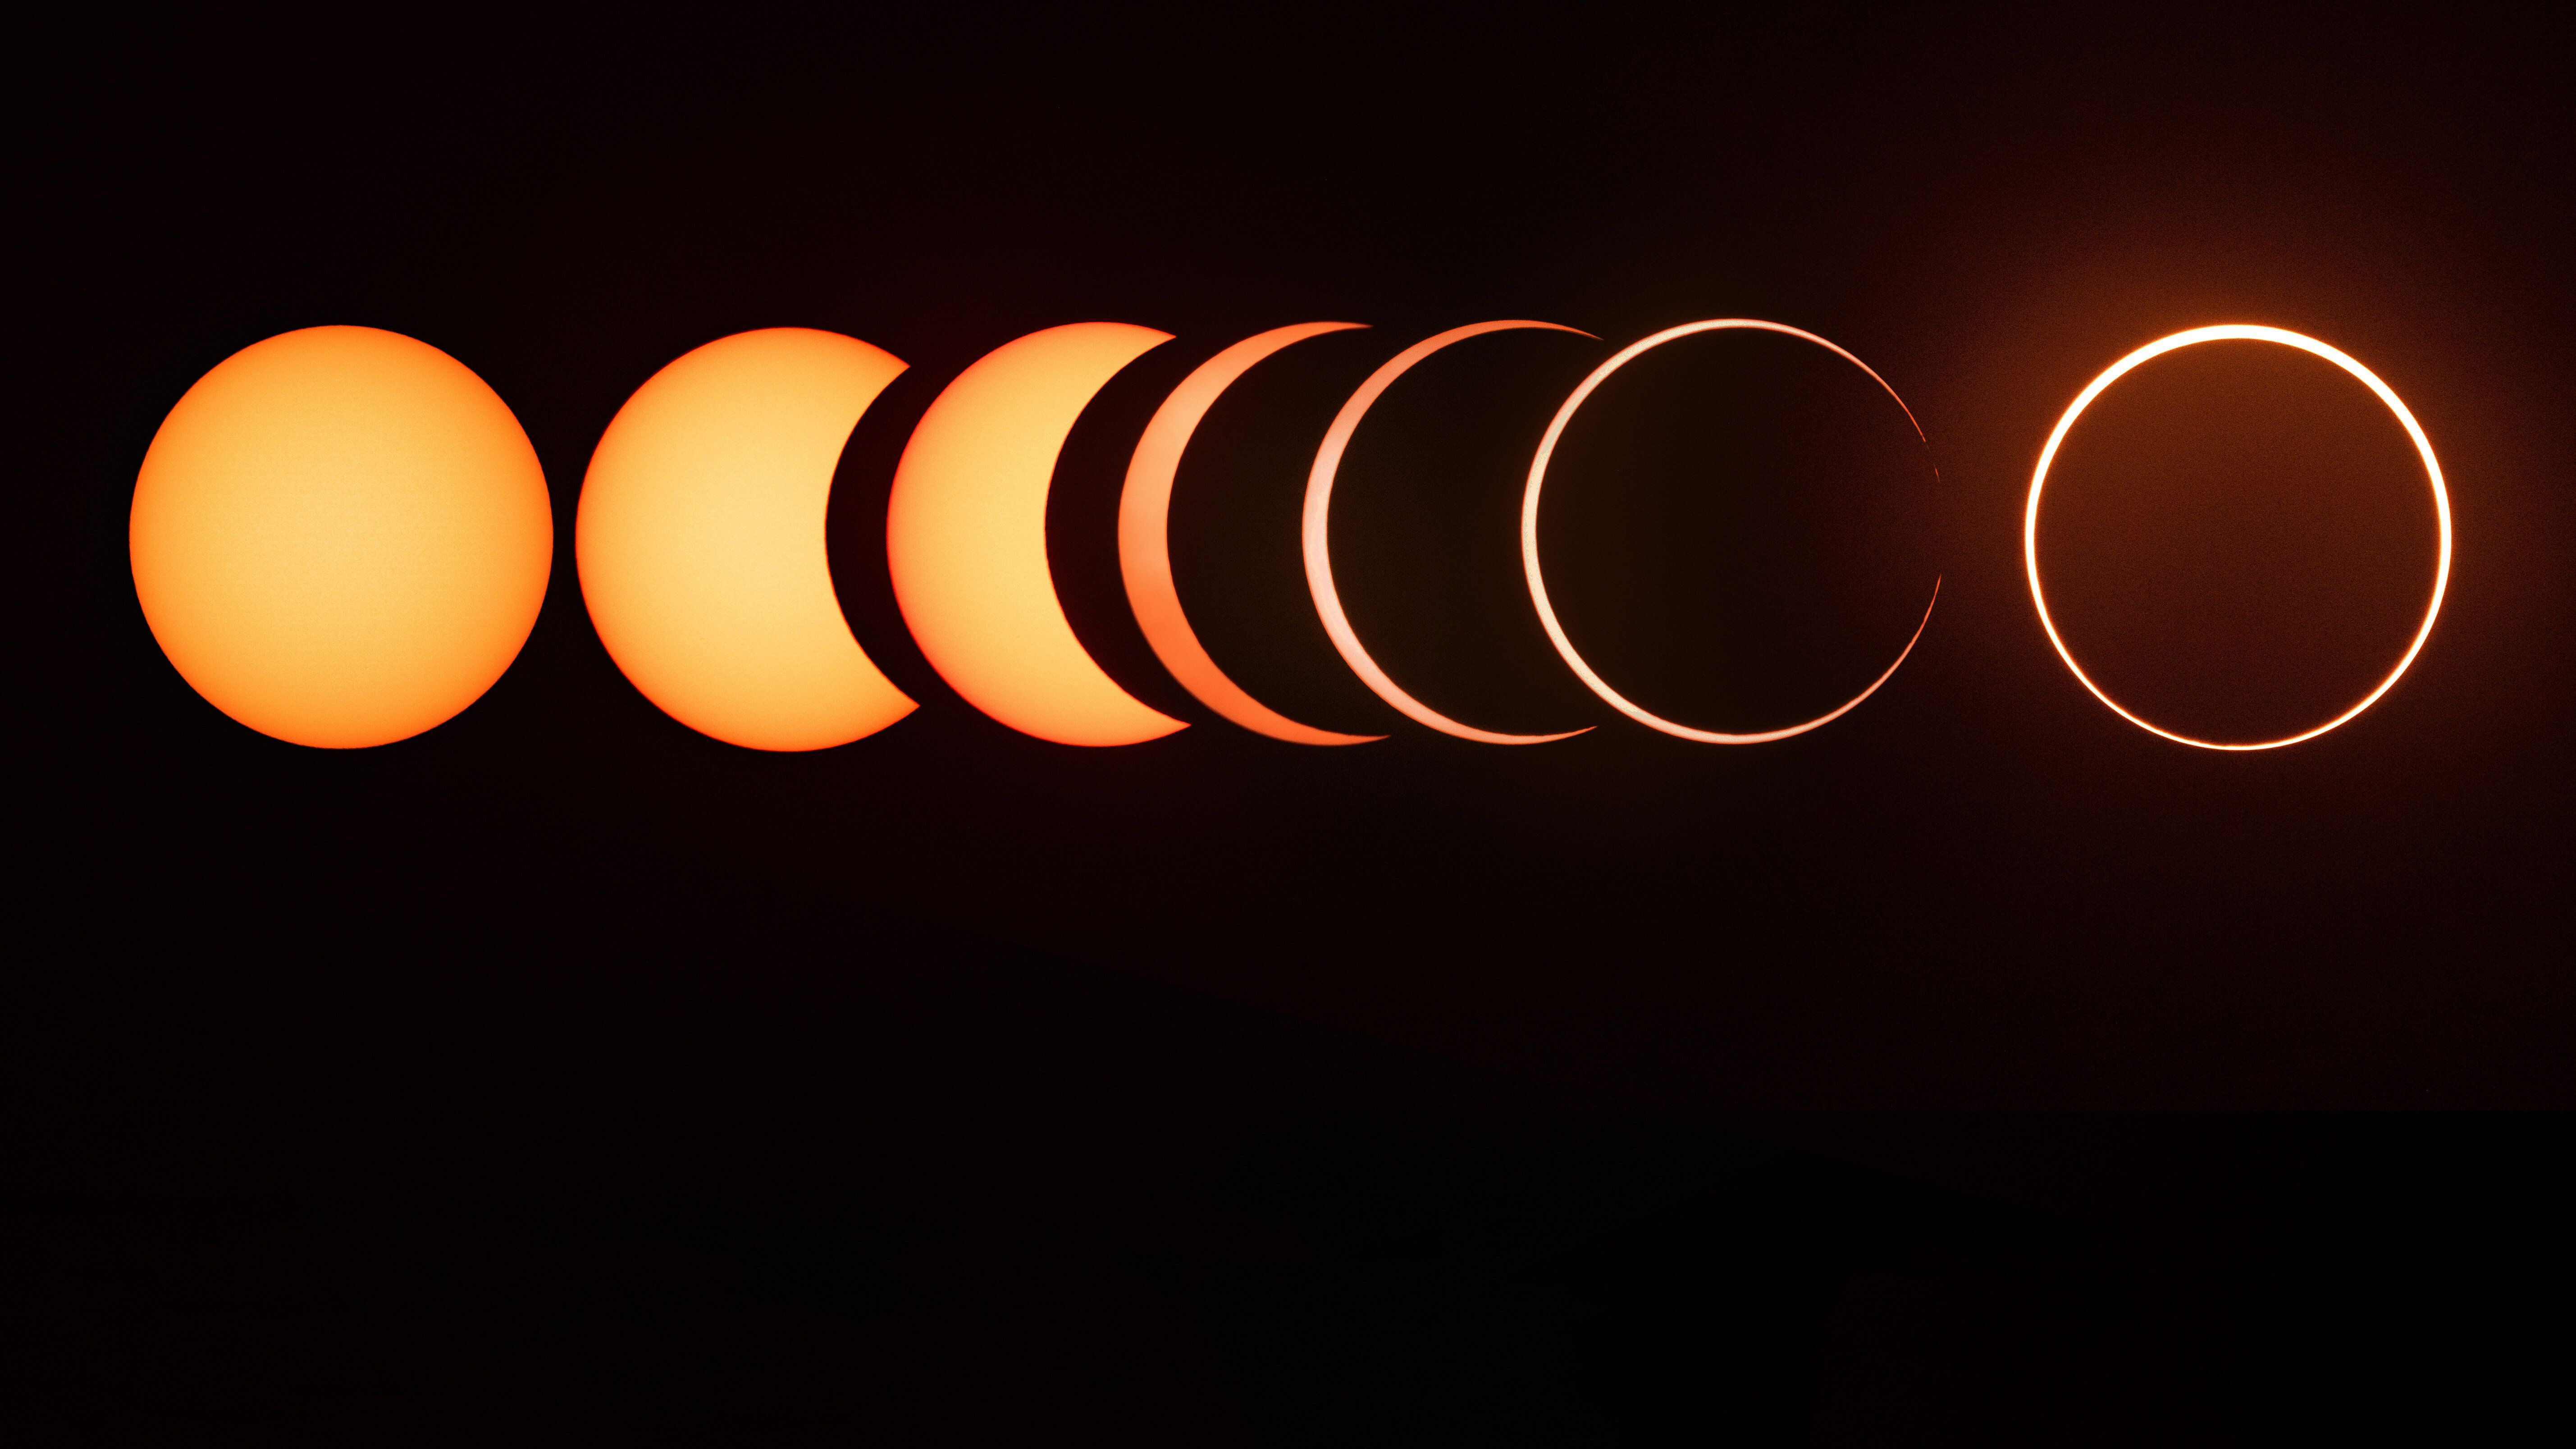 The entire sequence of a 2019 annual solar eclipse.